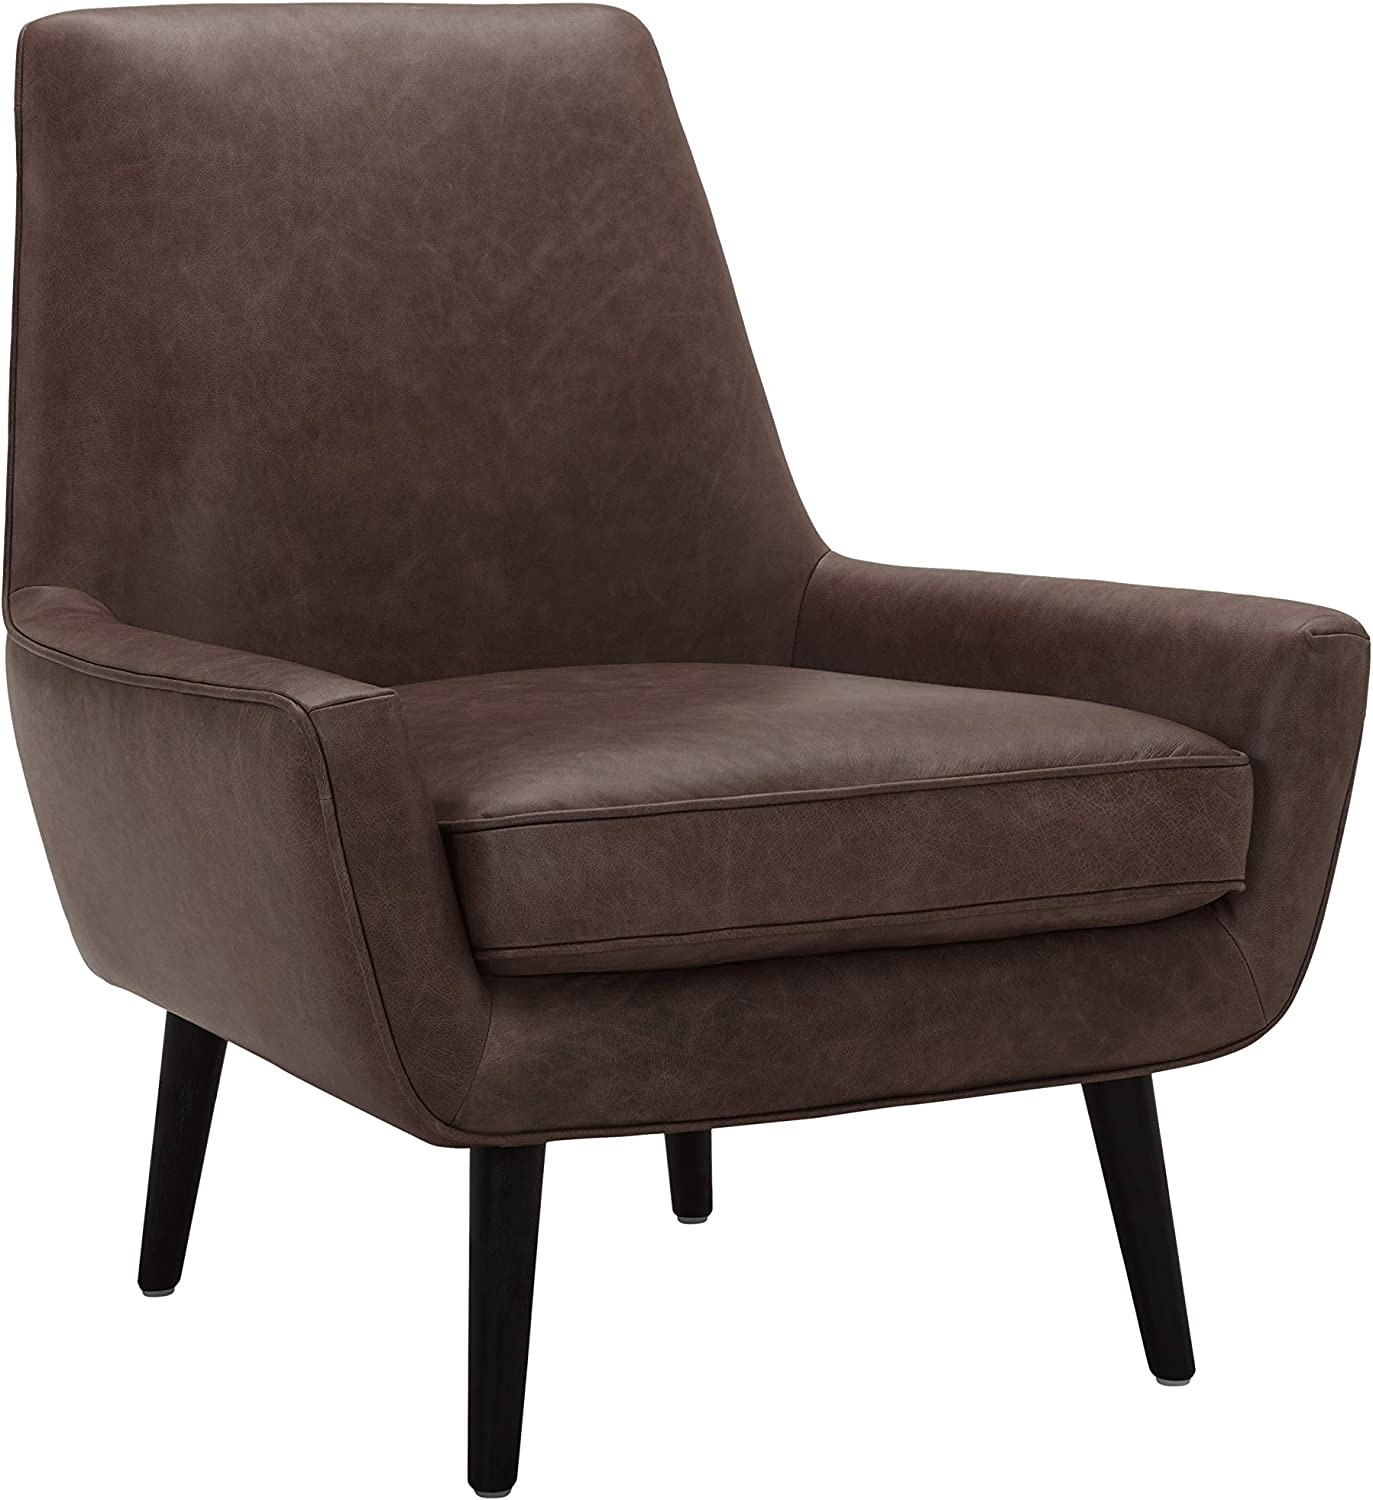 "Amazon Brand – Rivet Jamie Leather Mid-Century Modern Low Arm Accent Chair, 31""W, Brown"